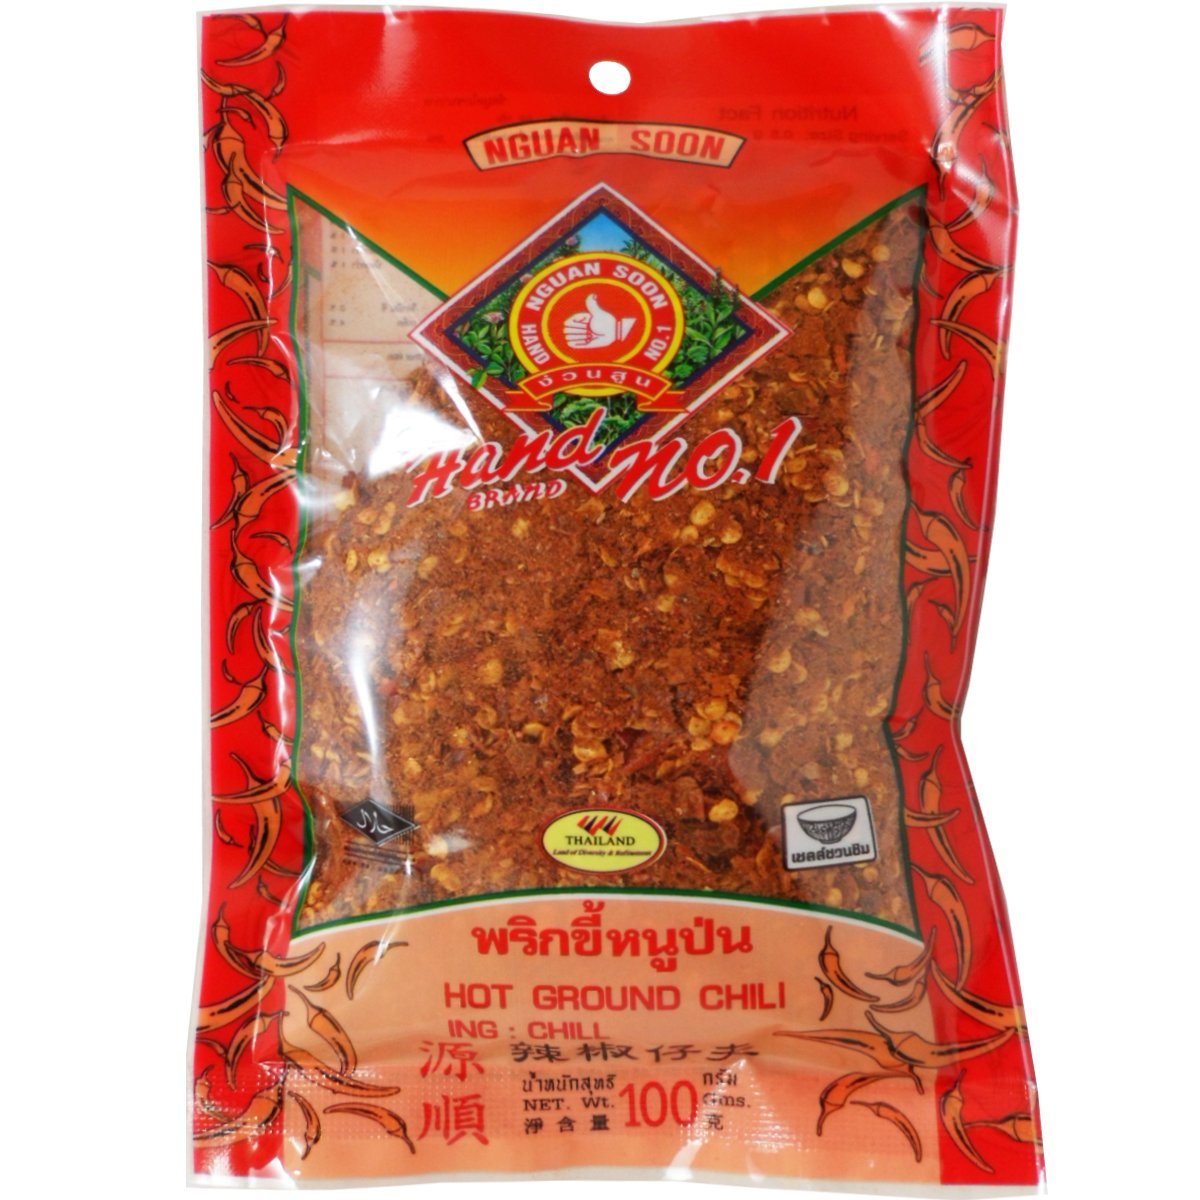 Hot Ground Dried Chili (Prik Pon) 100% From Natural Net Wt 100 G (3.53 Oz) Herbal Brand Nguan Soon X 3 Bags